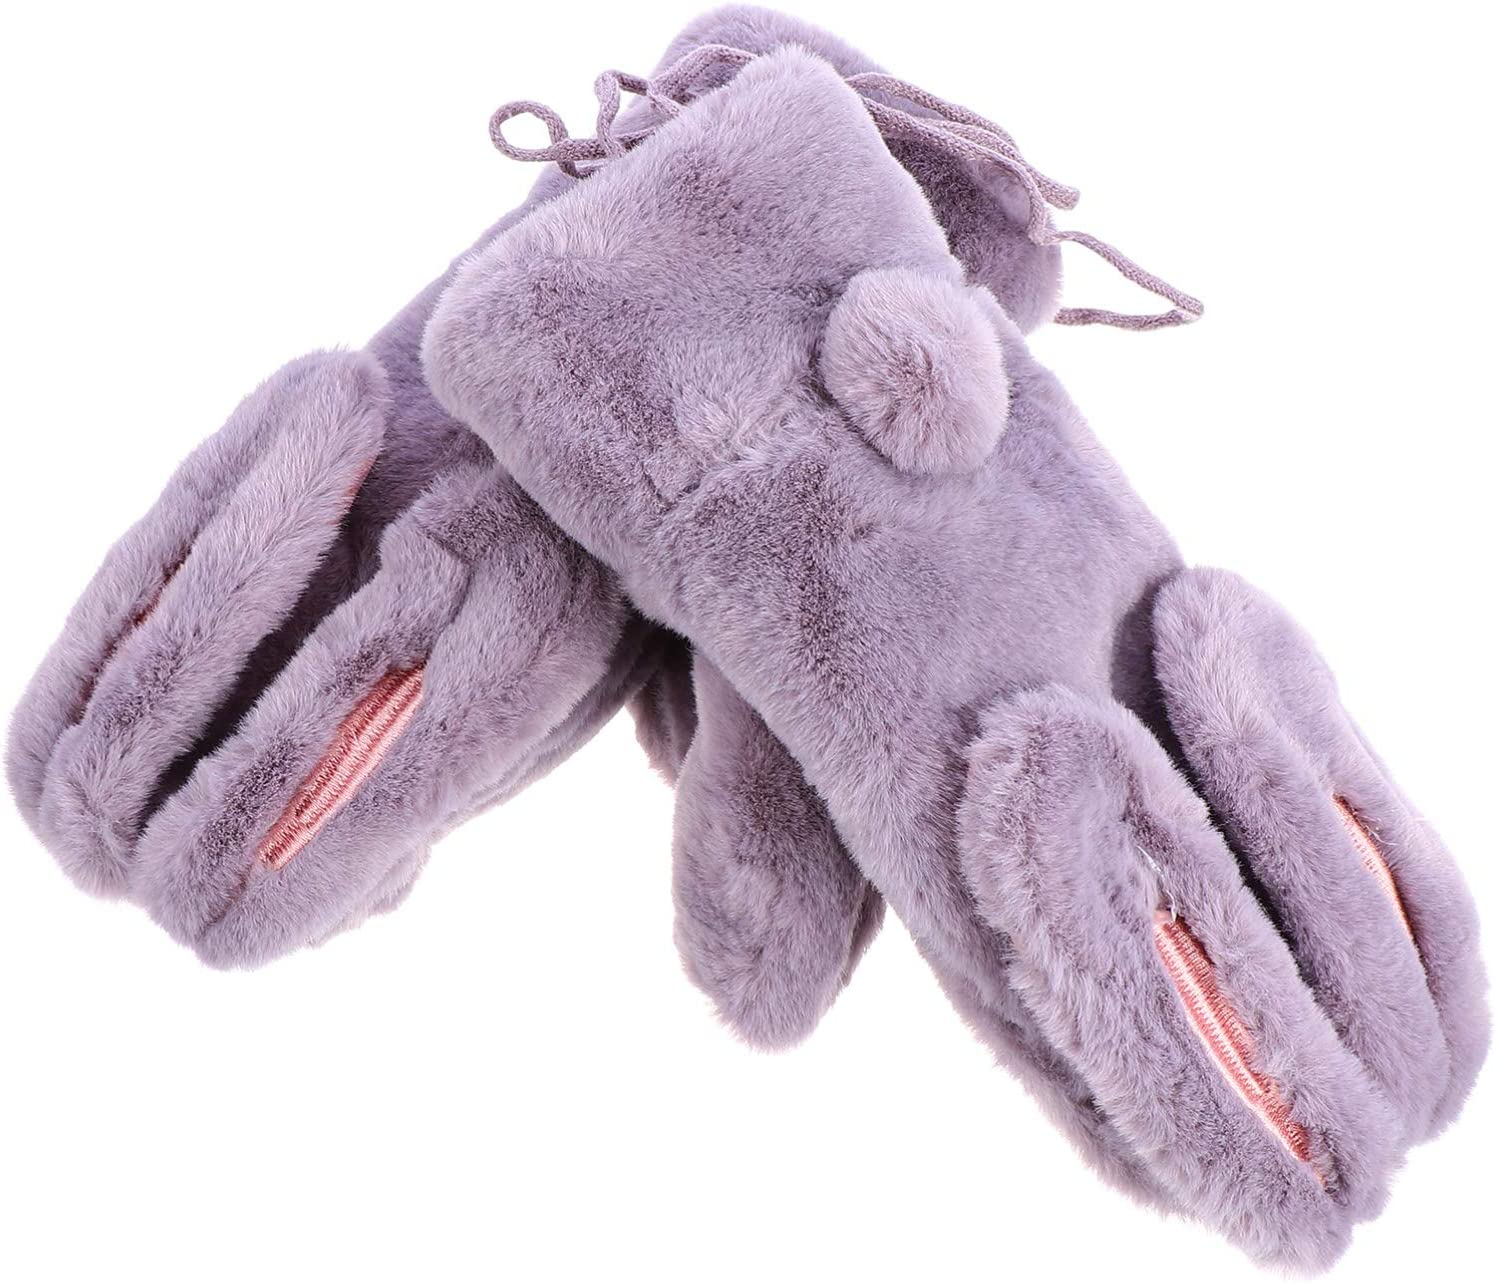 Amosfun Women Winter Warm Gloves Rabbit Ear Plush Mitten Can Be hung on Neck Magnet Full Finge Gloves for Christmas Holiday Cold Weather (Random Color)